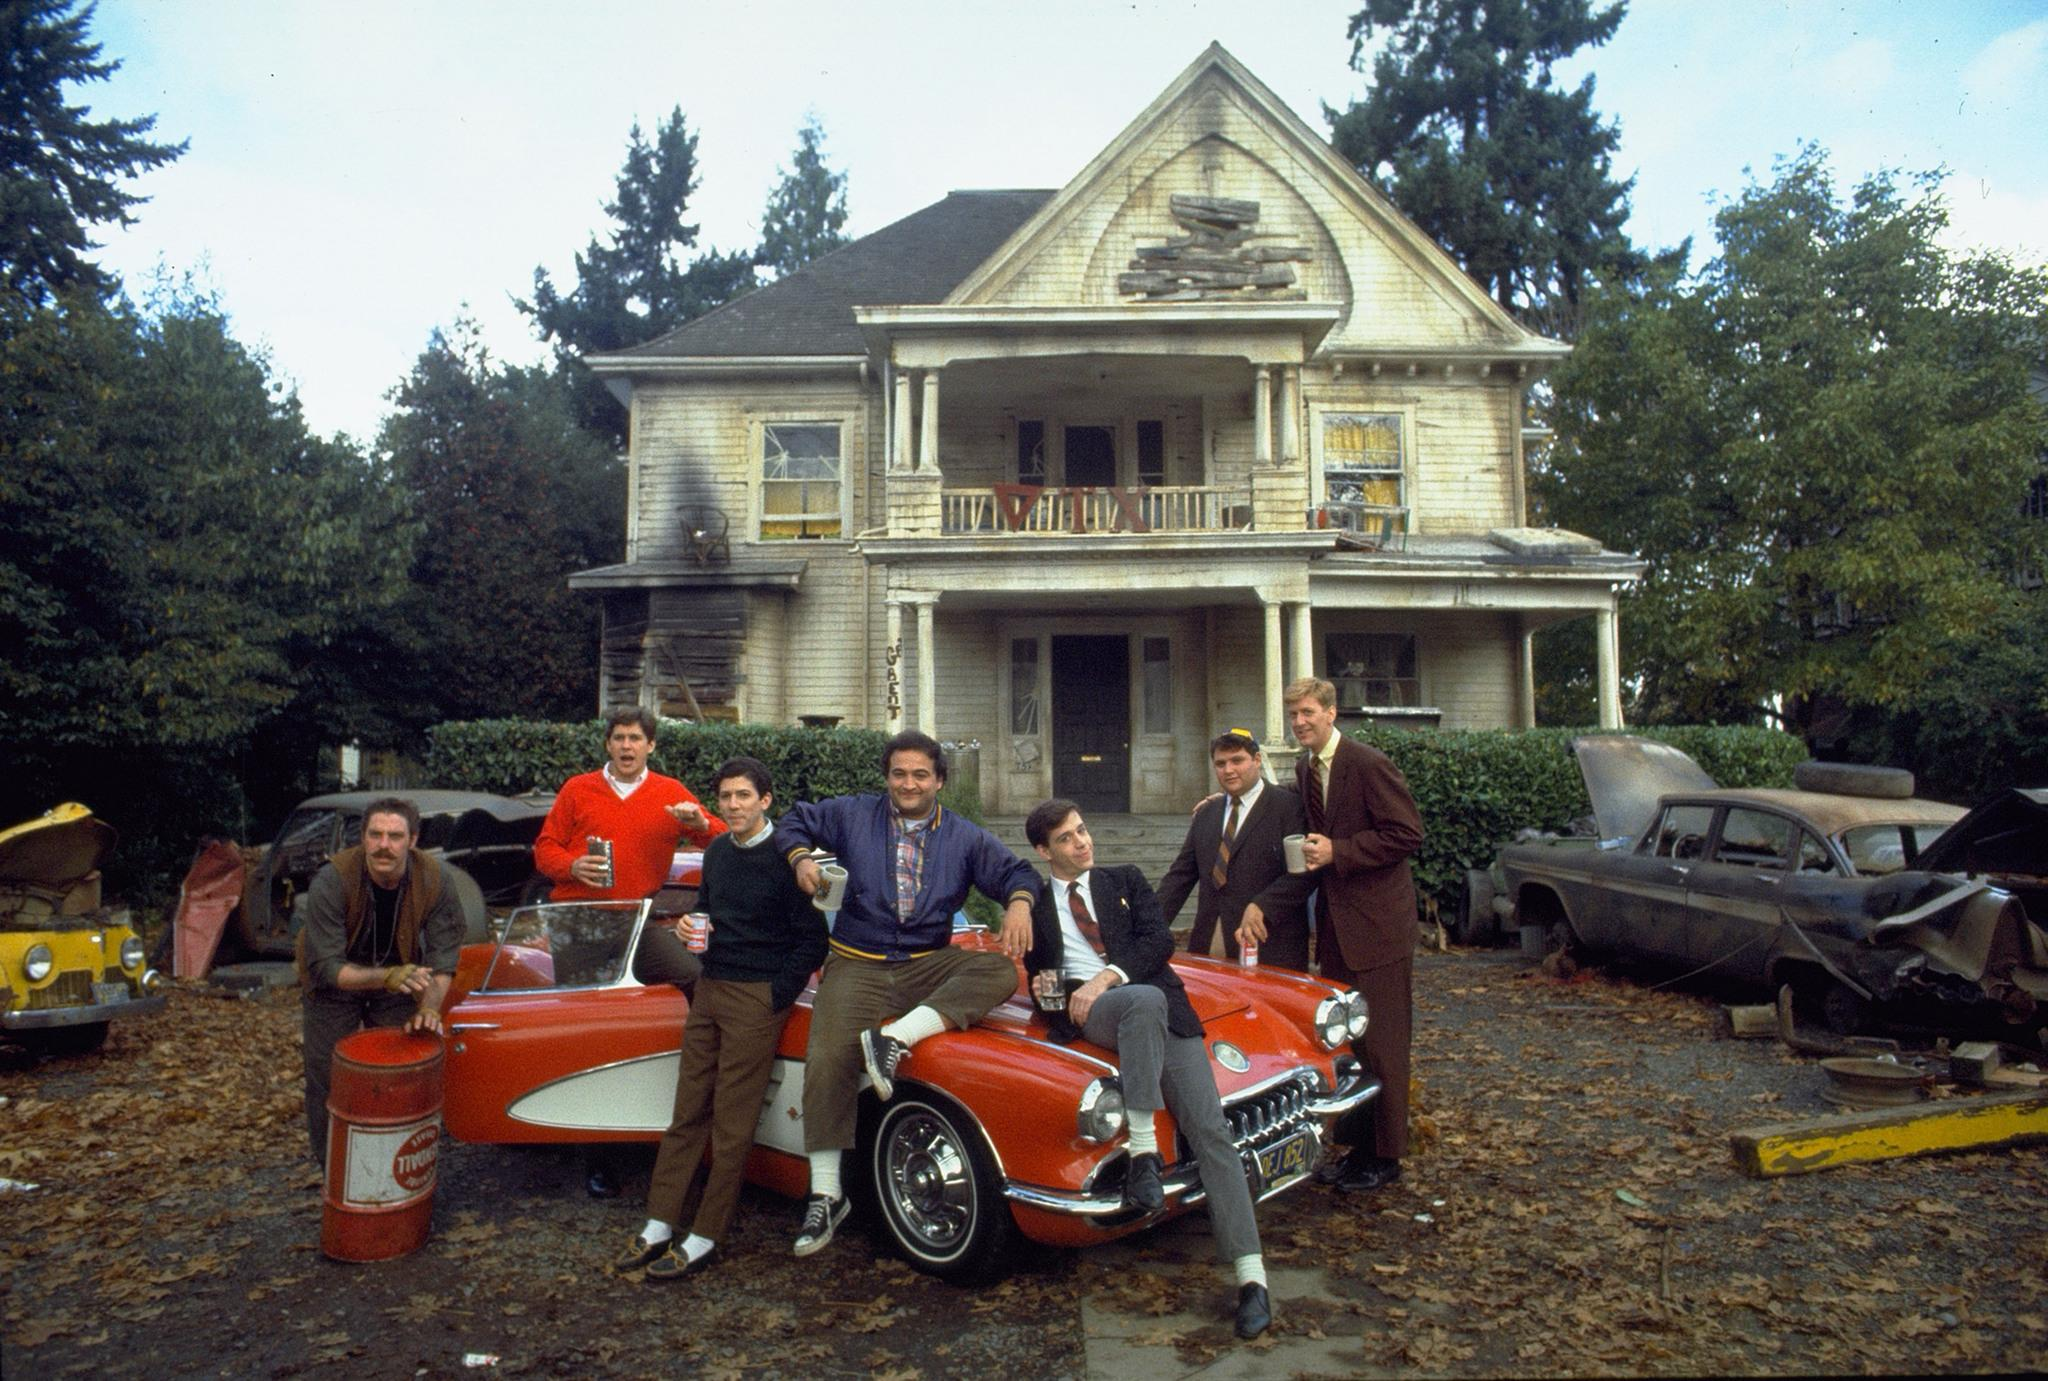 still-of-john-belushi-tom-hulce-tim-matheson-and-peter-riegert-in-animal-house-1978